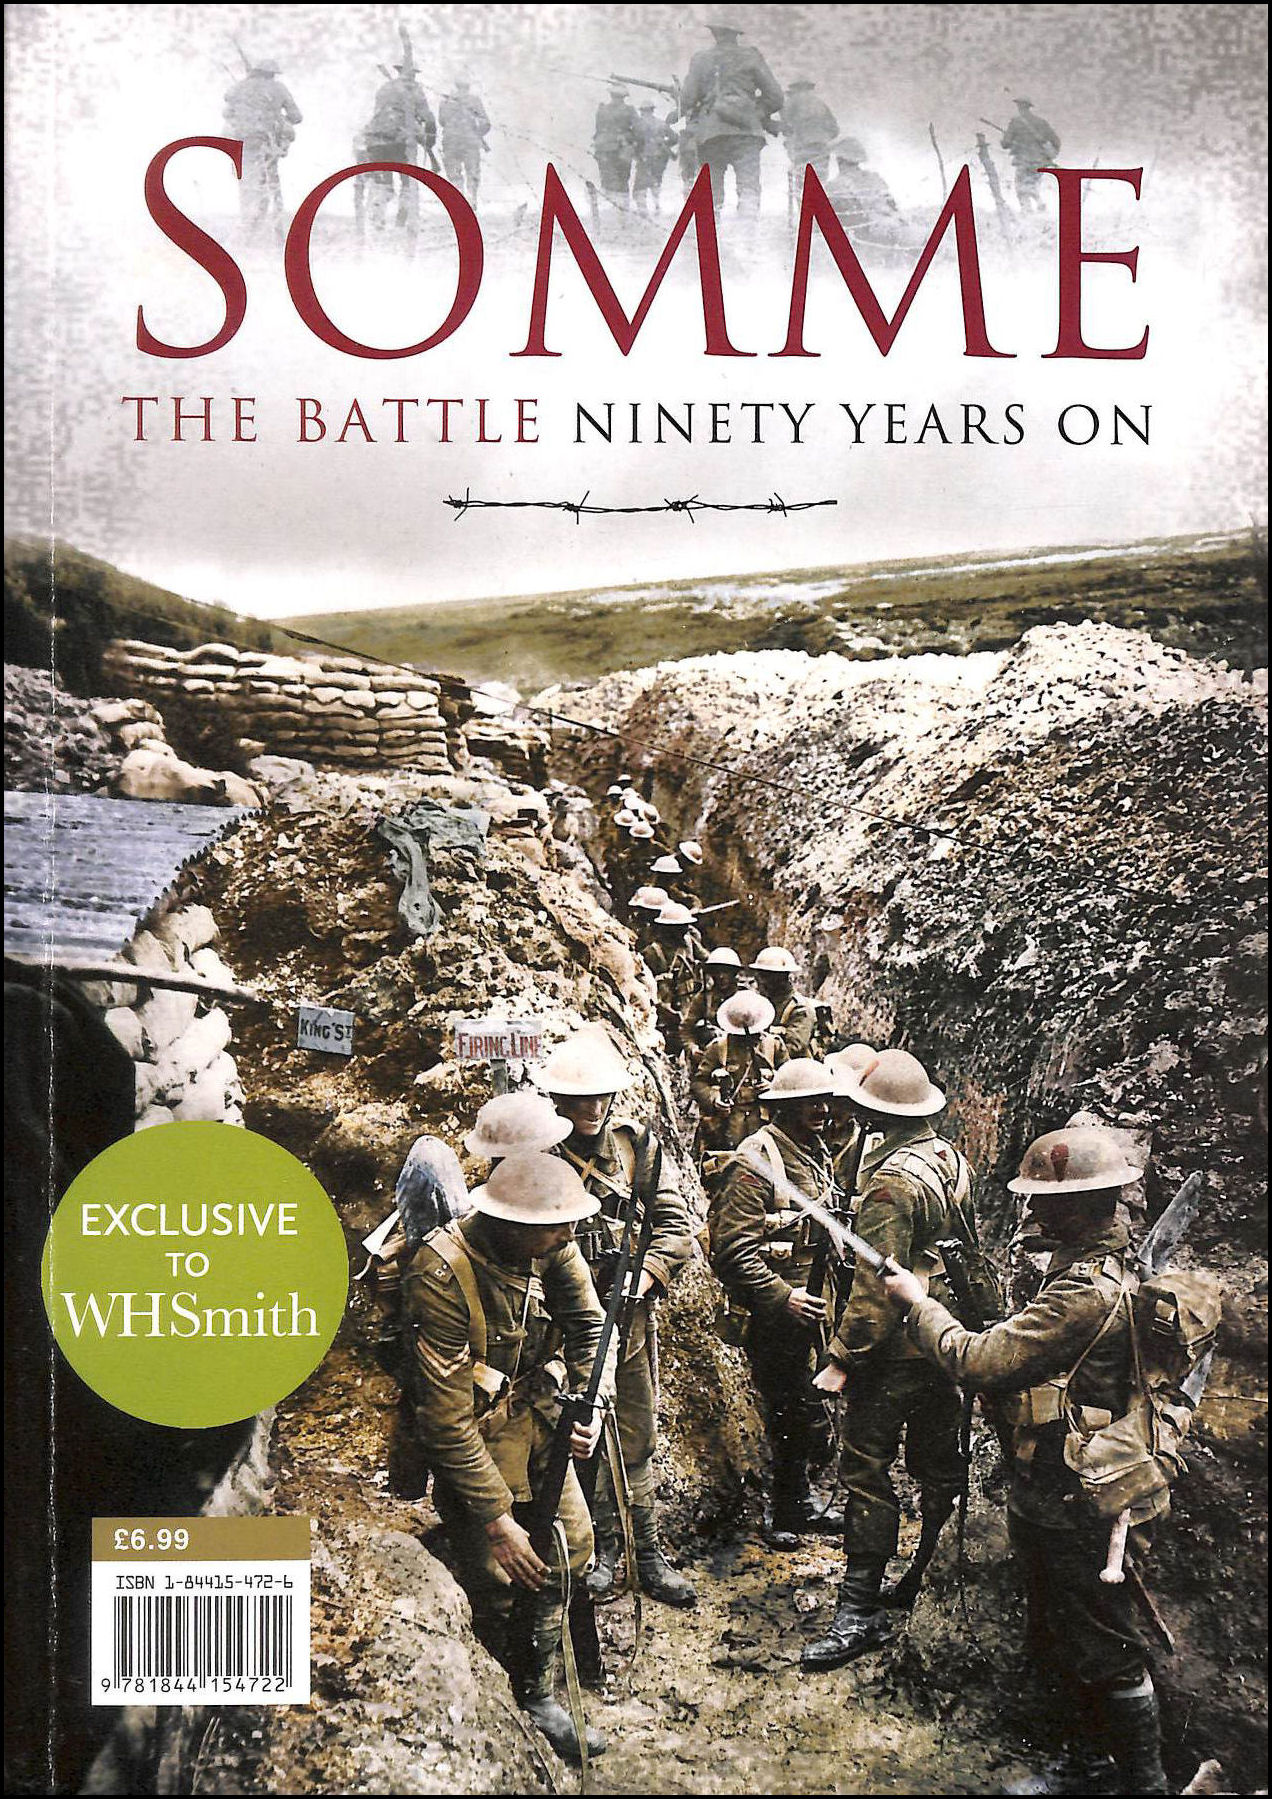 Somme: The Battle Ninety Years On, Wilkinson, Jon [Editor]